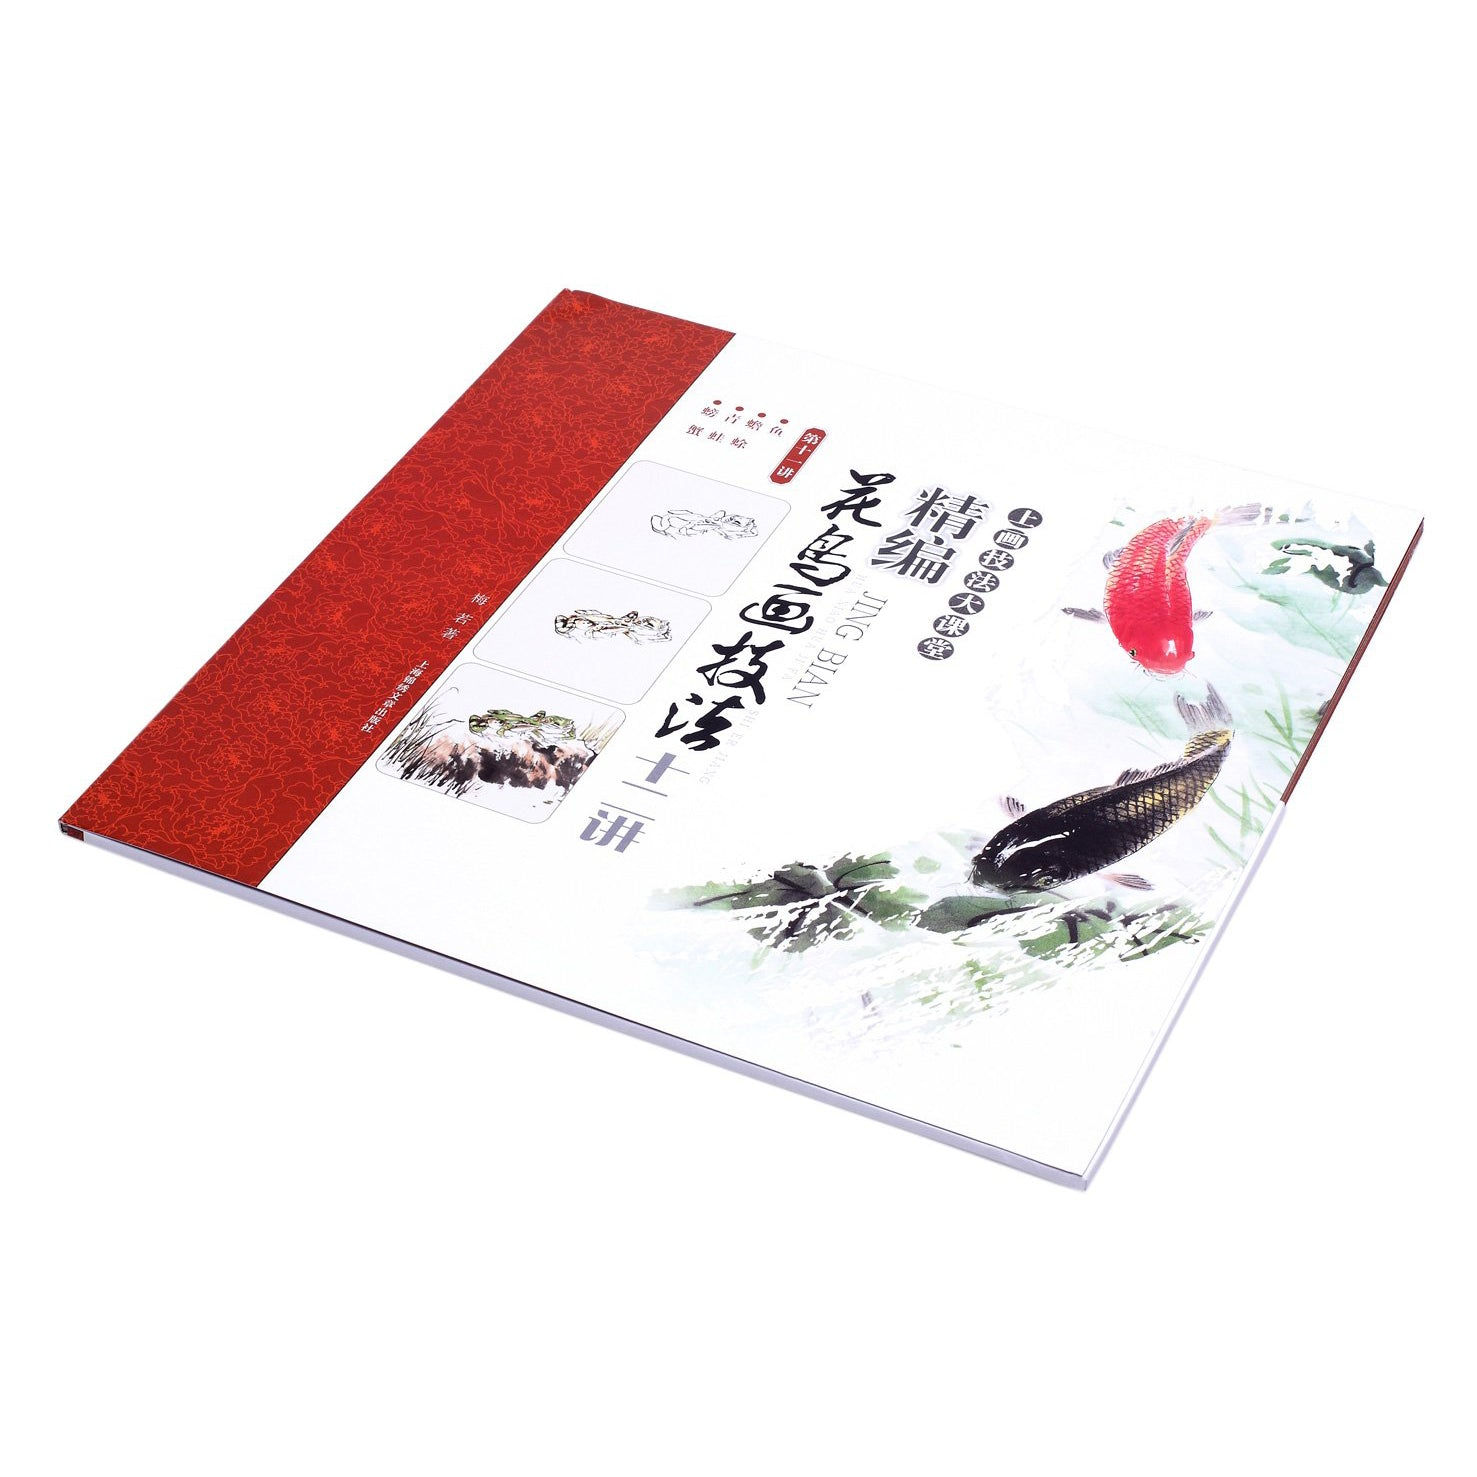 This May´s specific deck of cards focuses on animals living and or around the water and which are traditionally often depicted on Chinese and Japanese brush painting artworks.